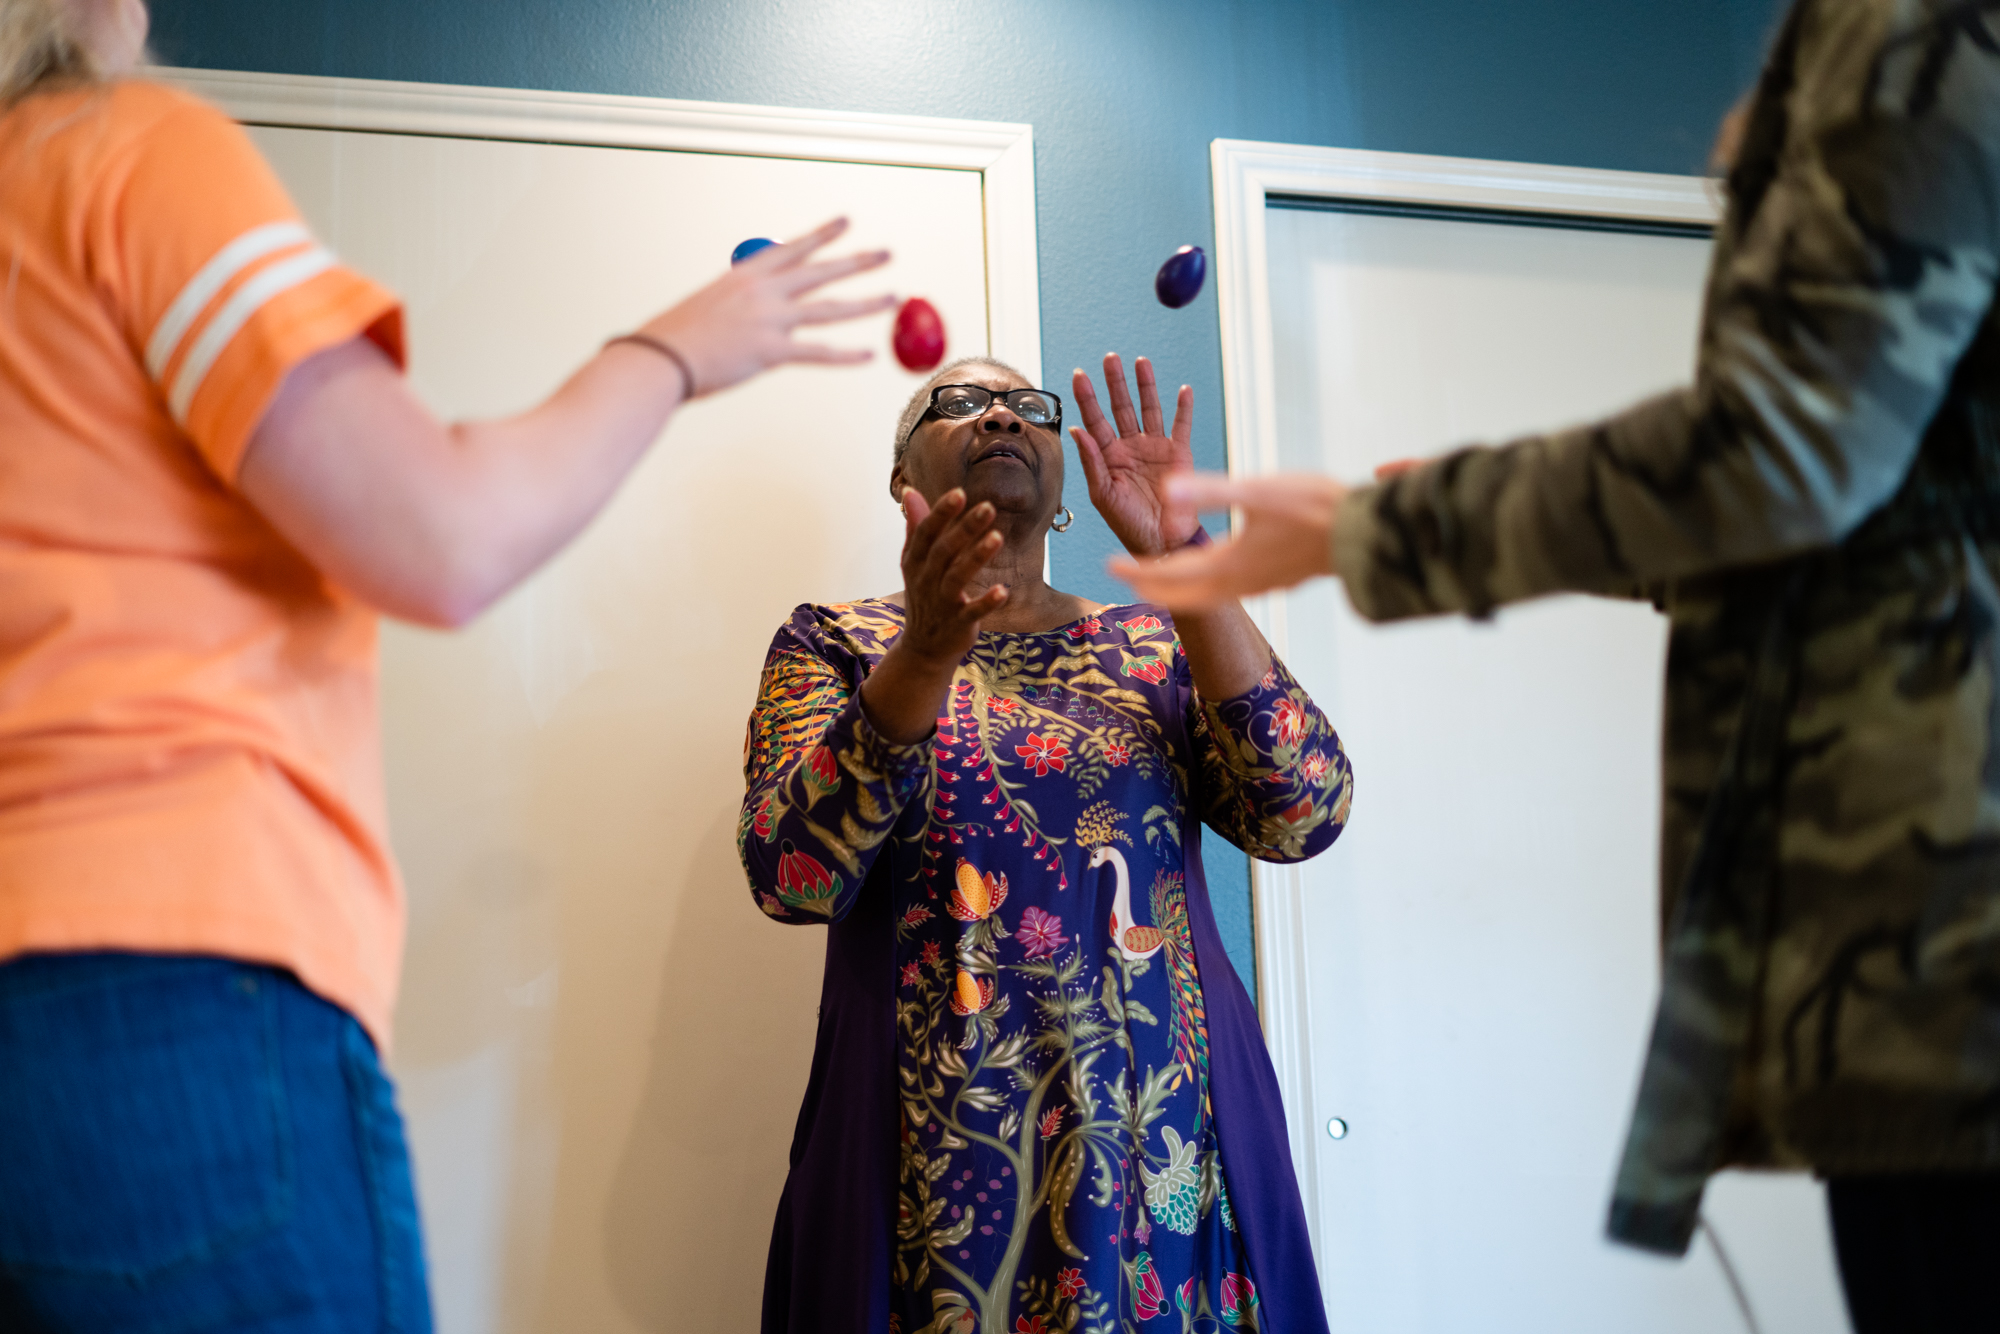 Davis practices an egg toss exercise with two therapists. Hand-eye coordination exercises are routine in her therapy sessions.